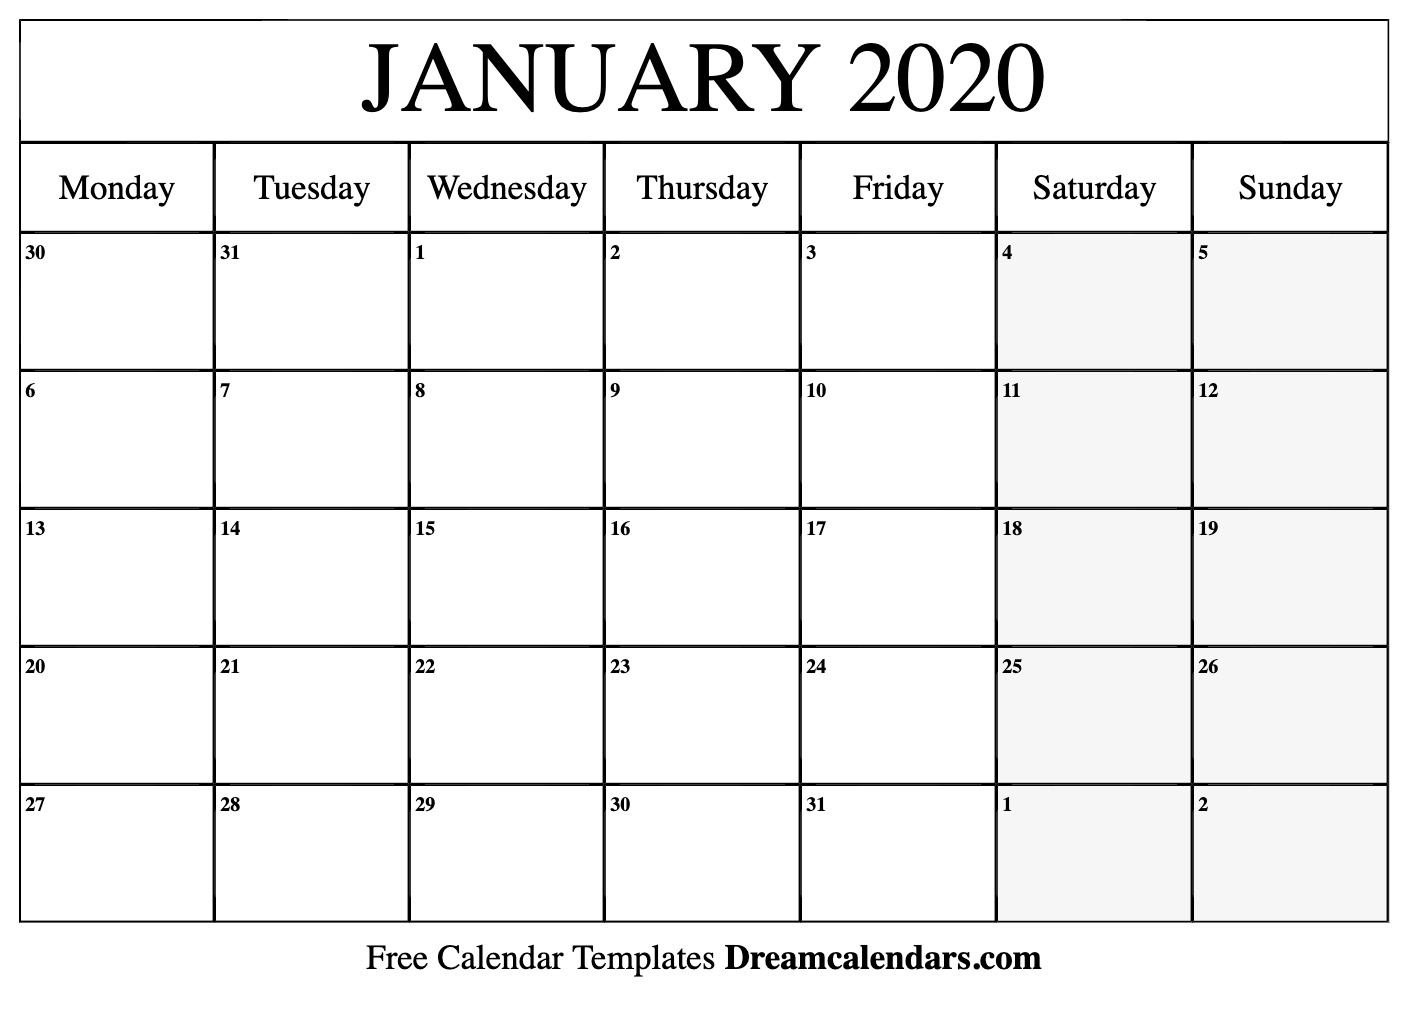 January 2020 Calendar Holidays Printable  Topa throughout Michel Zbinden December 2020